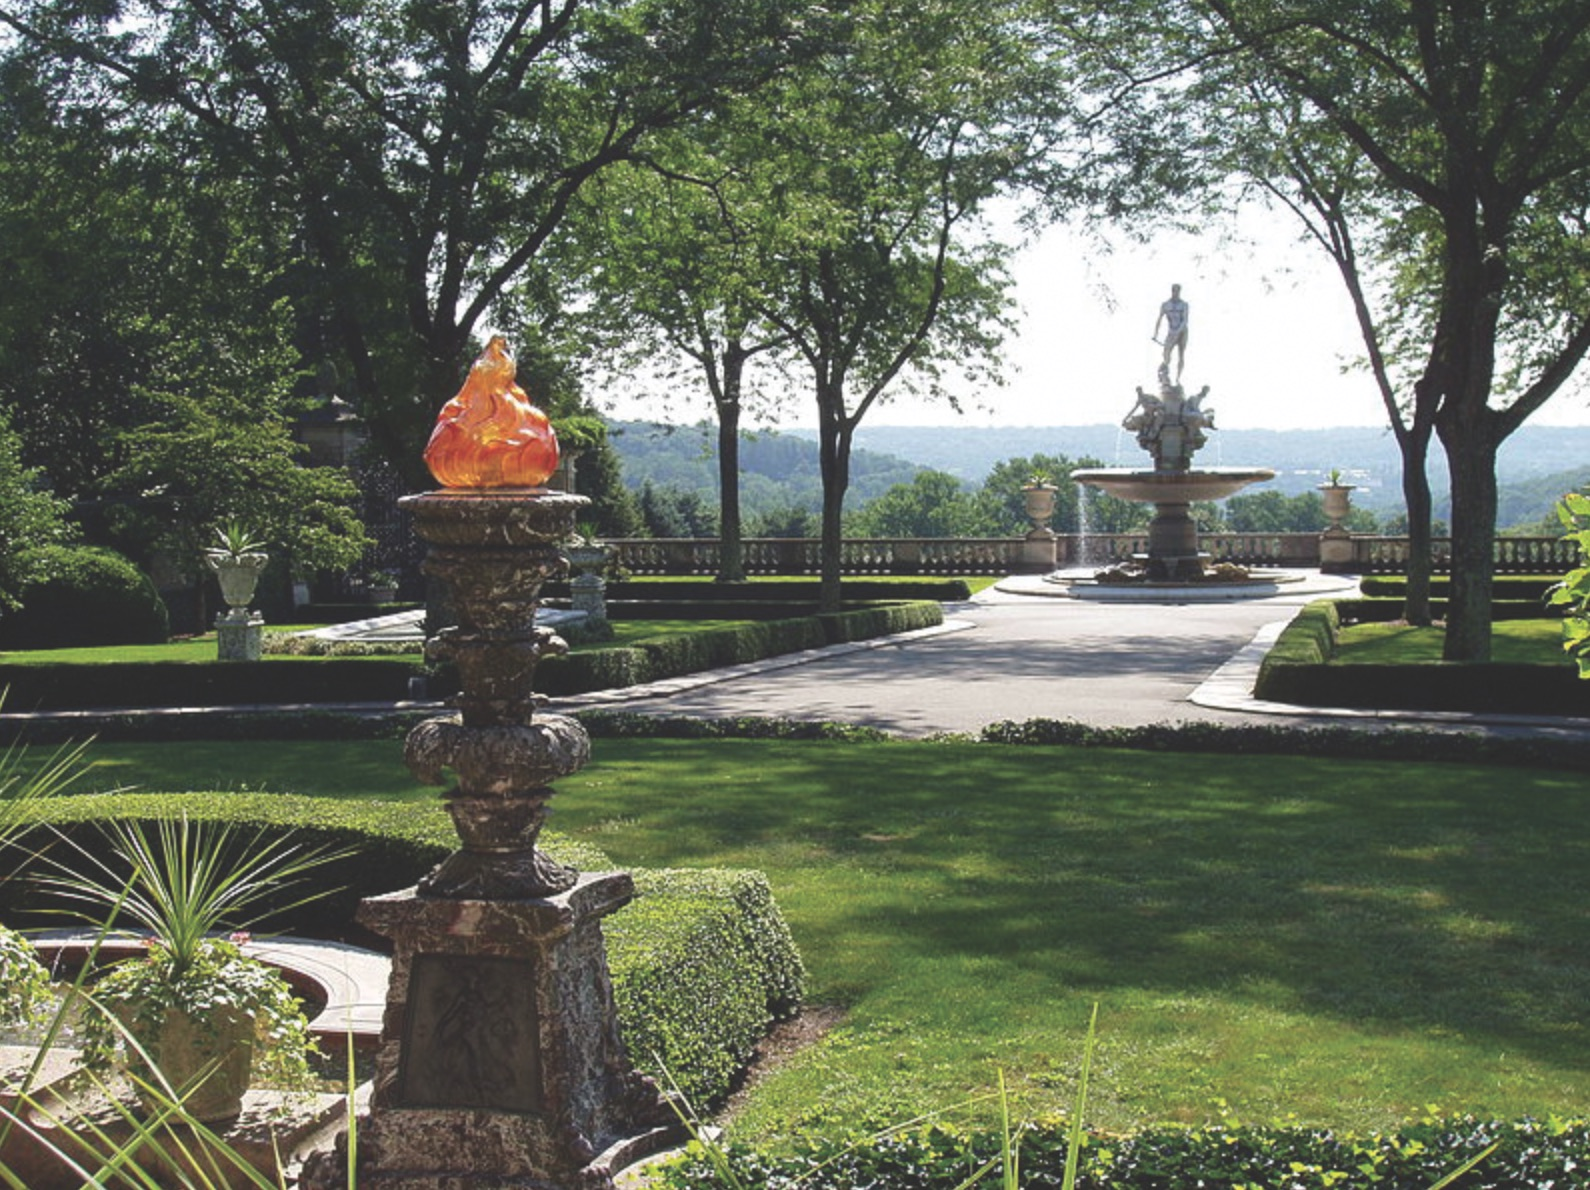 Kykuit was built on high ground, affording spectacular views of the Hudson River.